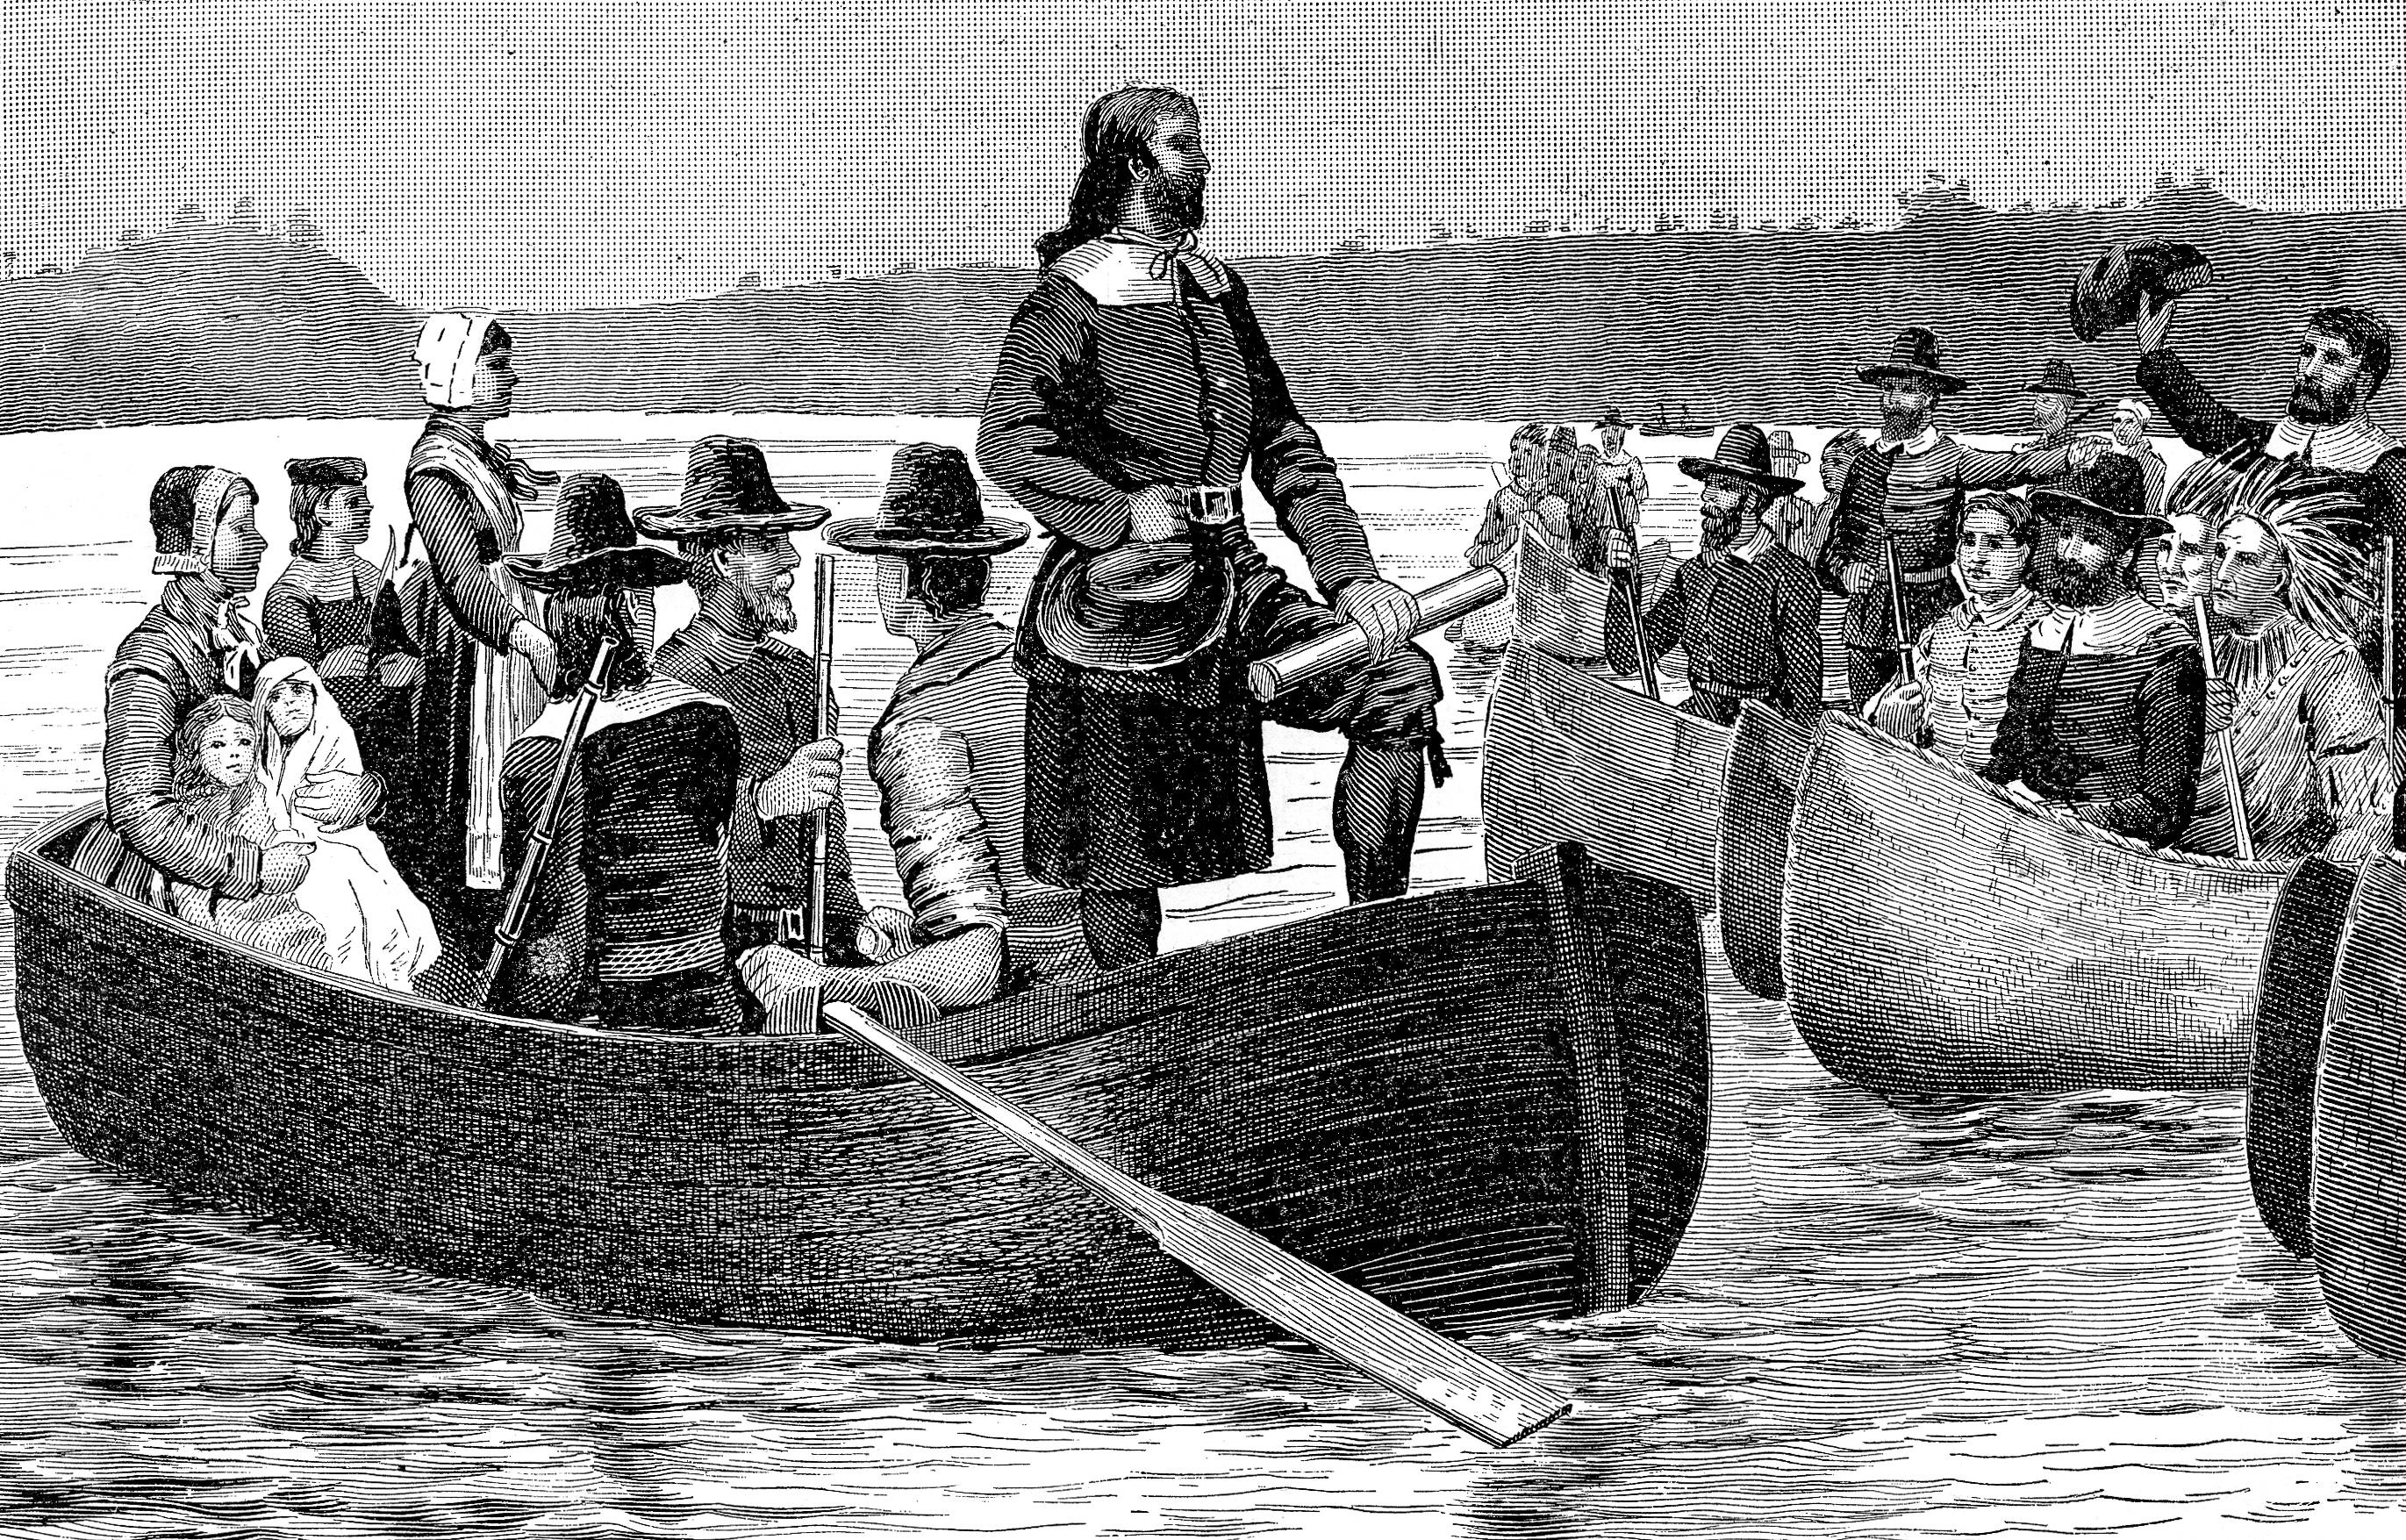 Roger Williams returns to Rhode Island with Charter from England.